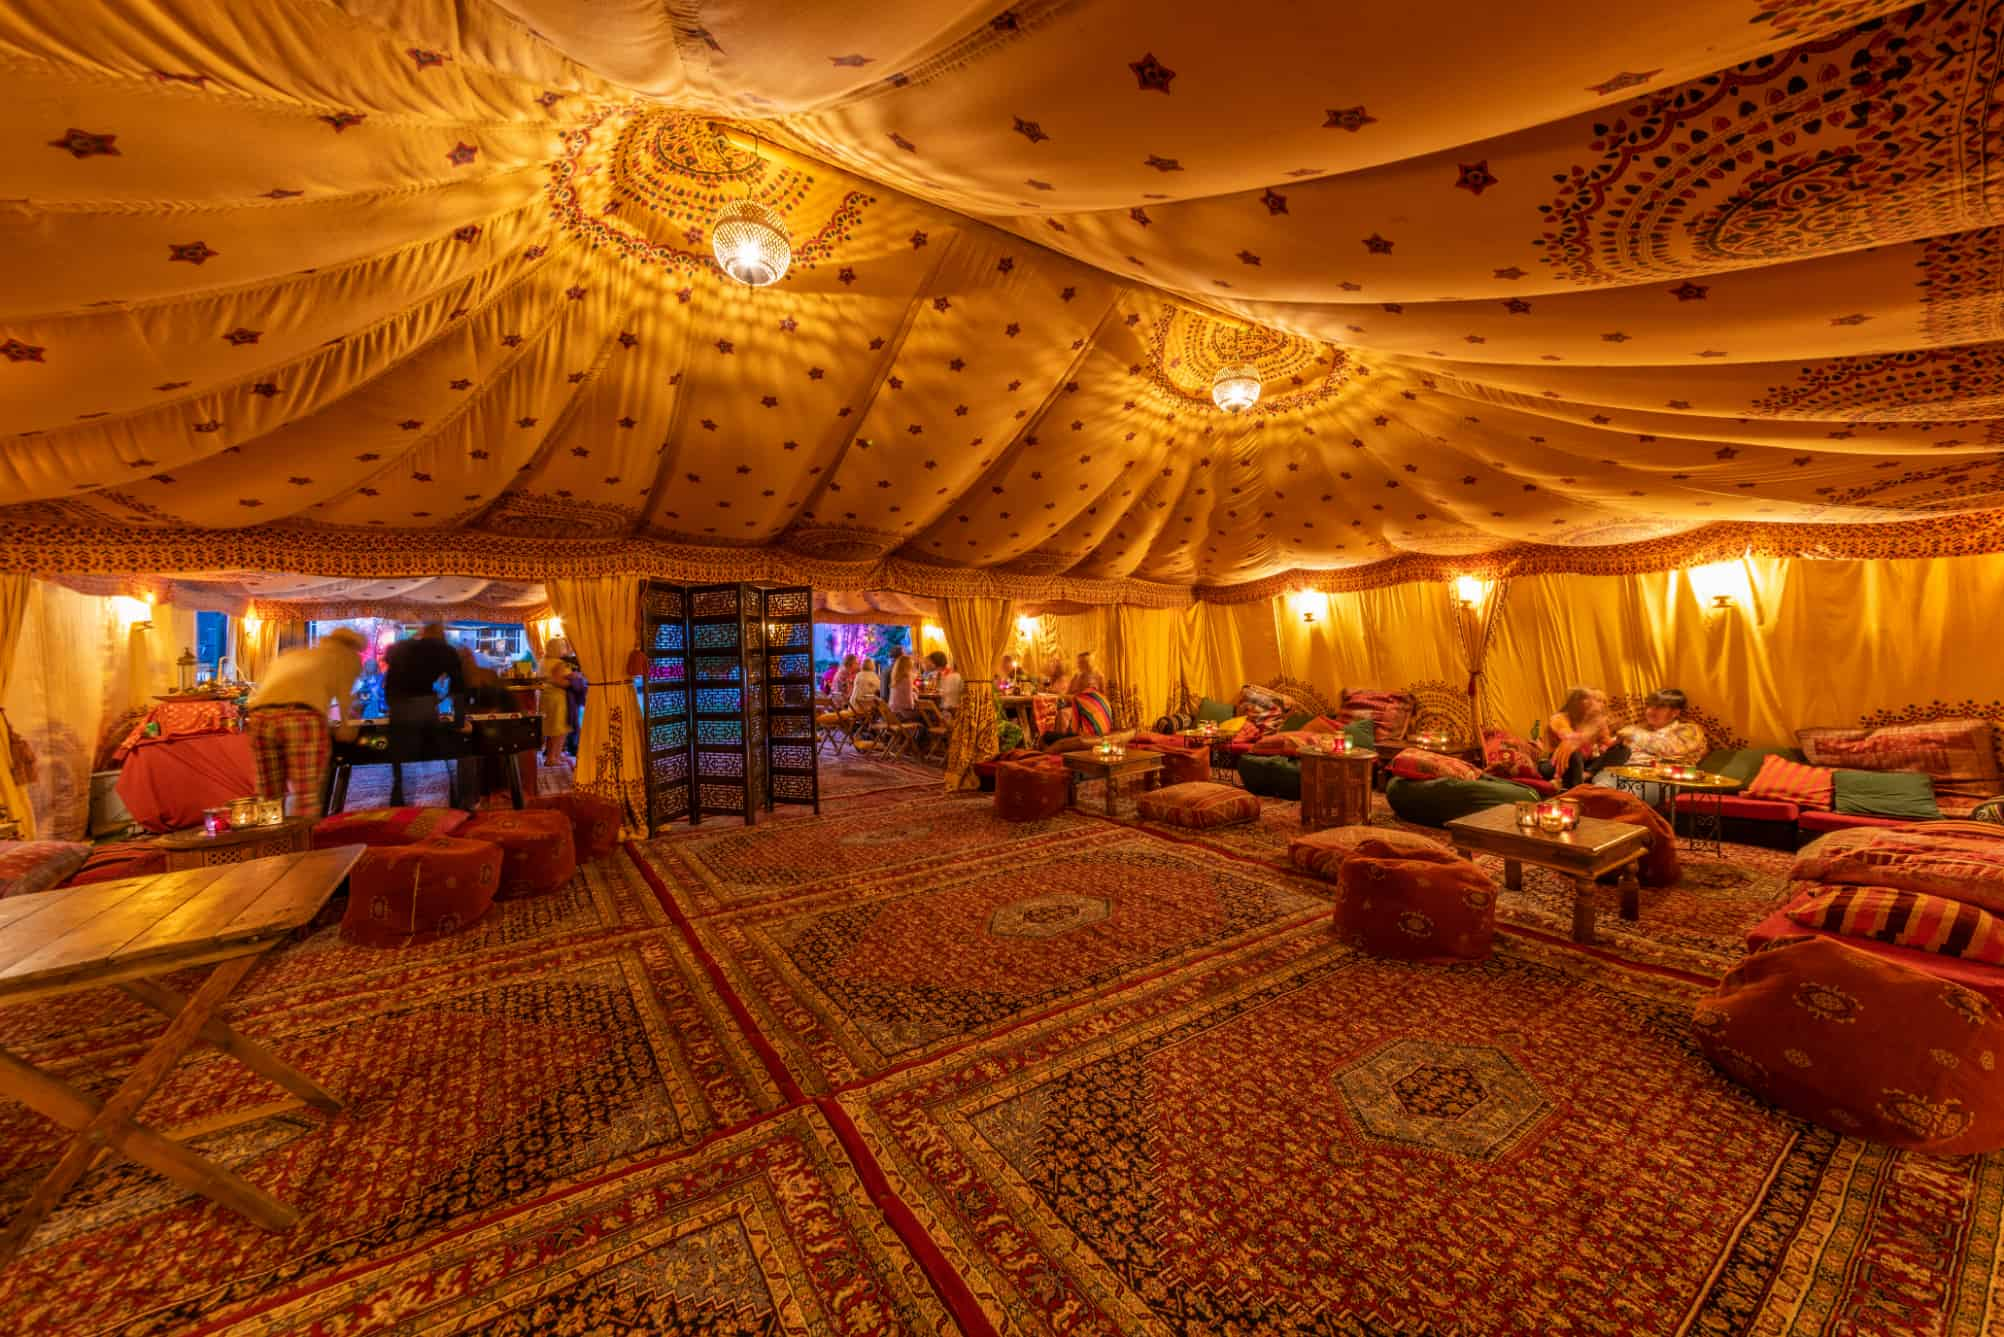 Inside an Arabian tent with persian rugs